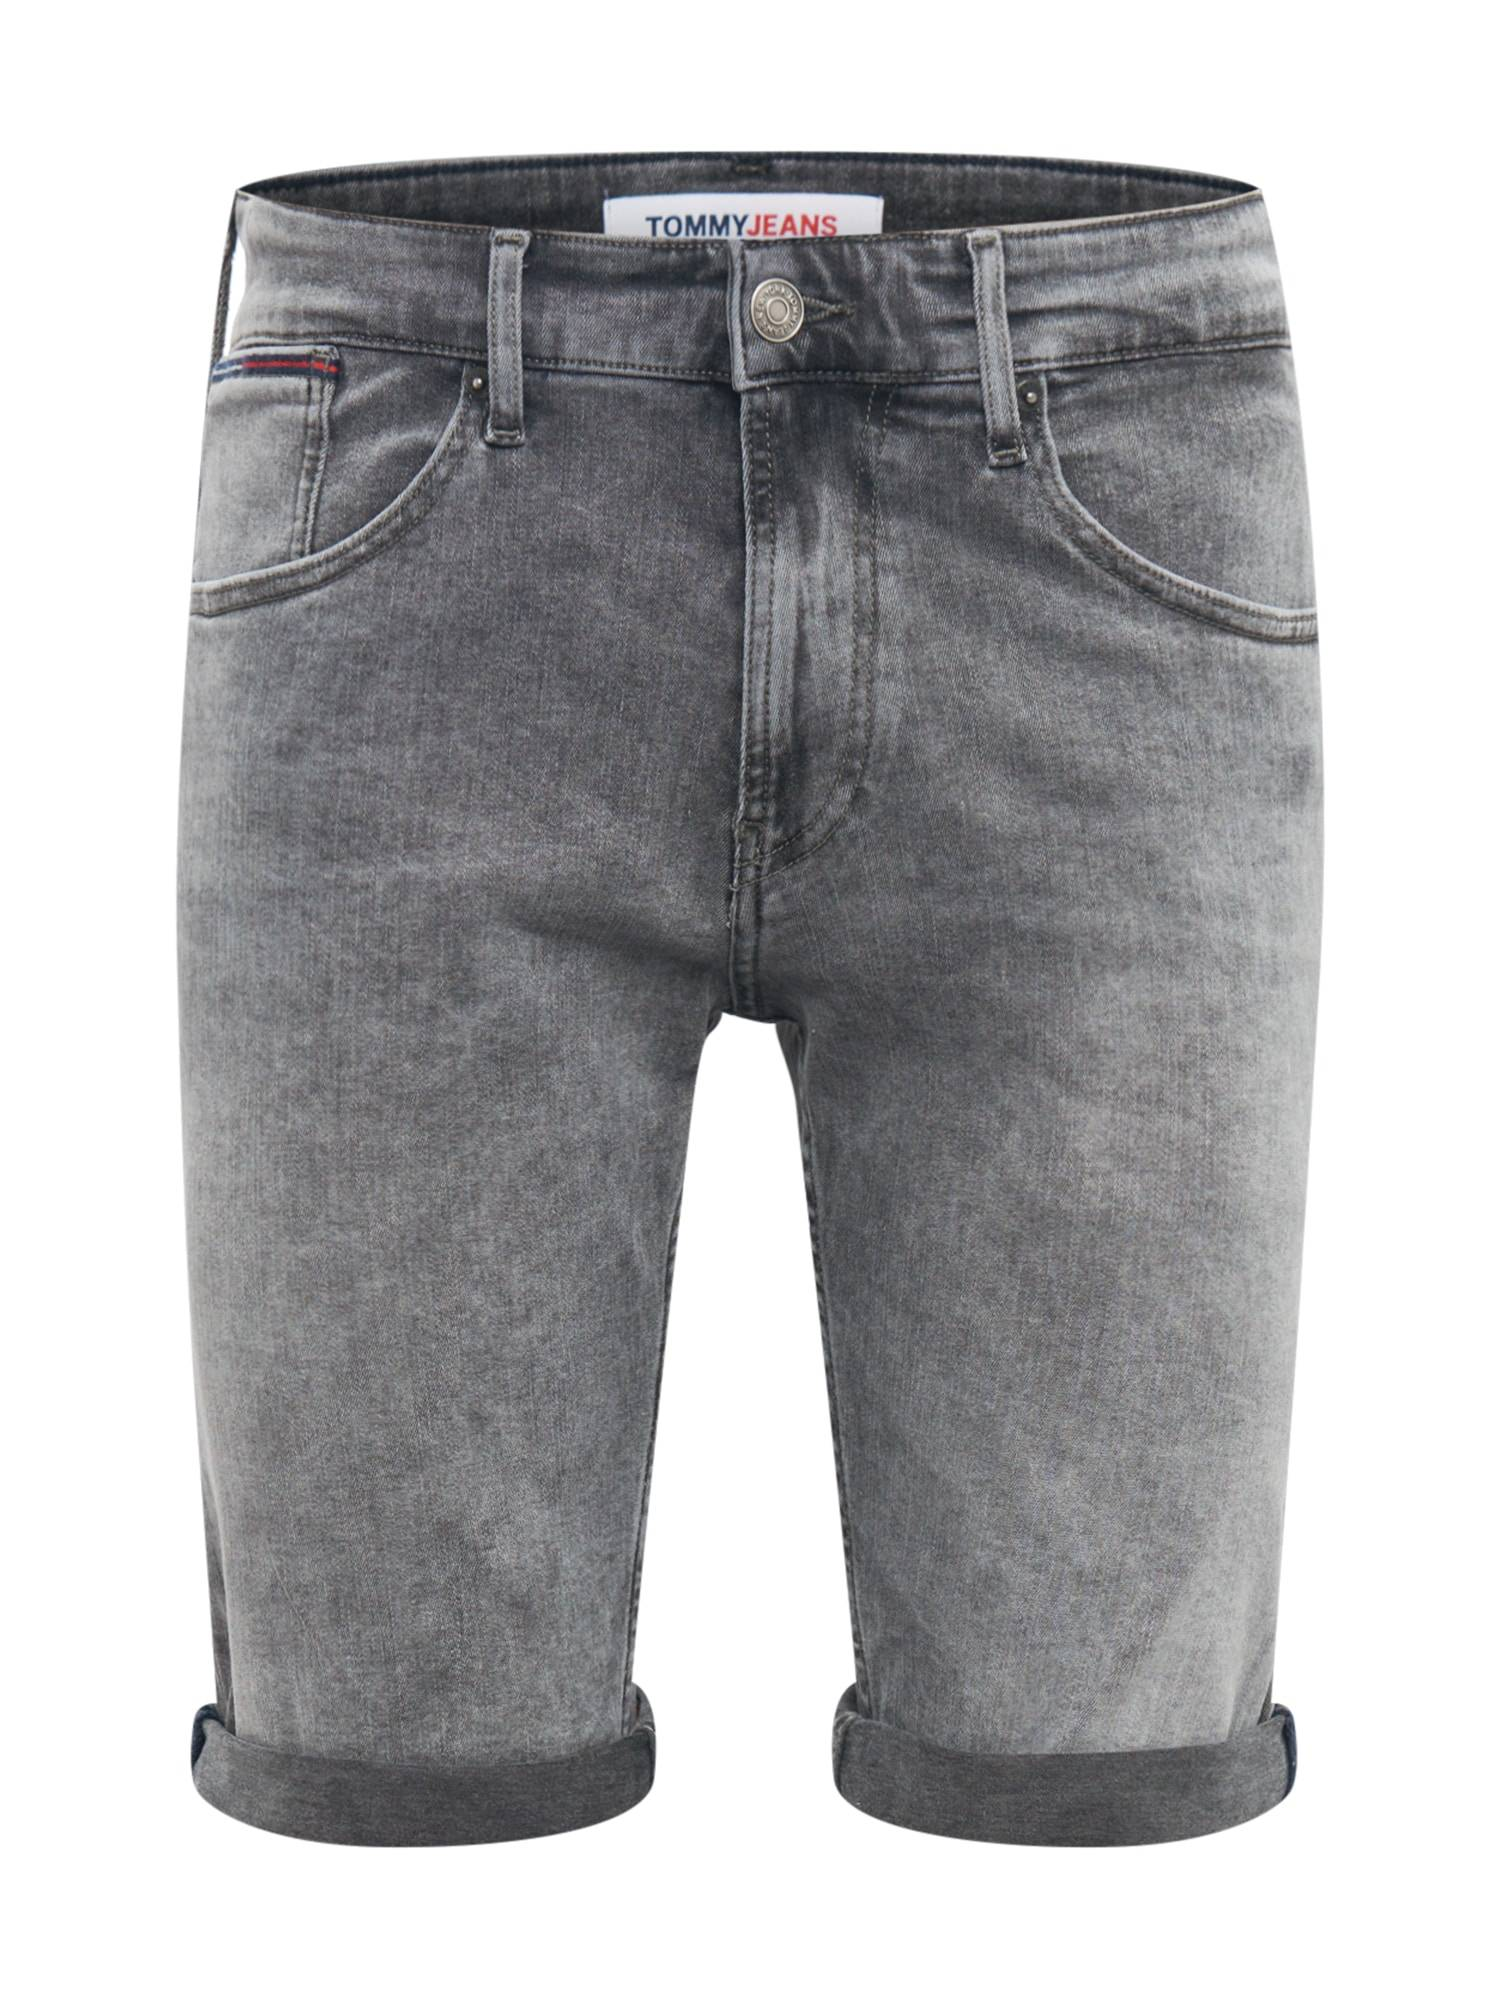 Tommy Jeans Jean 'RONNIE'  - Gris - Taille: 30 - male